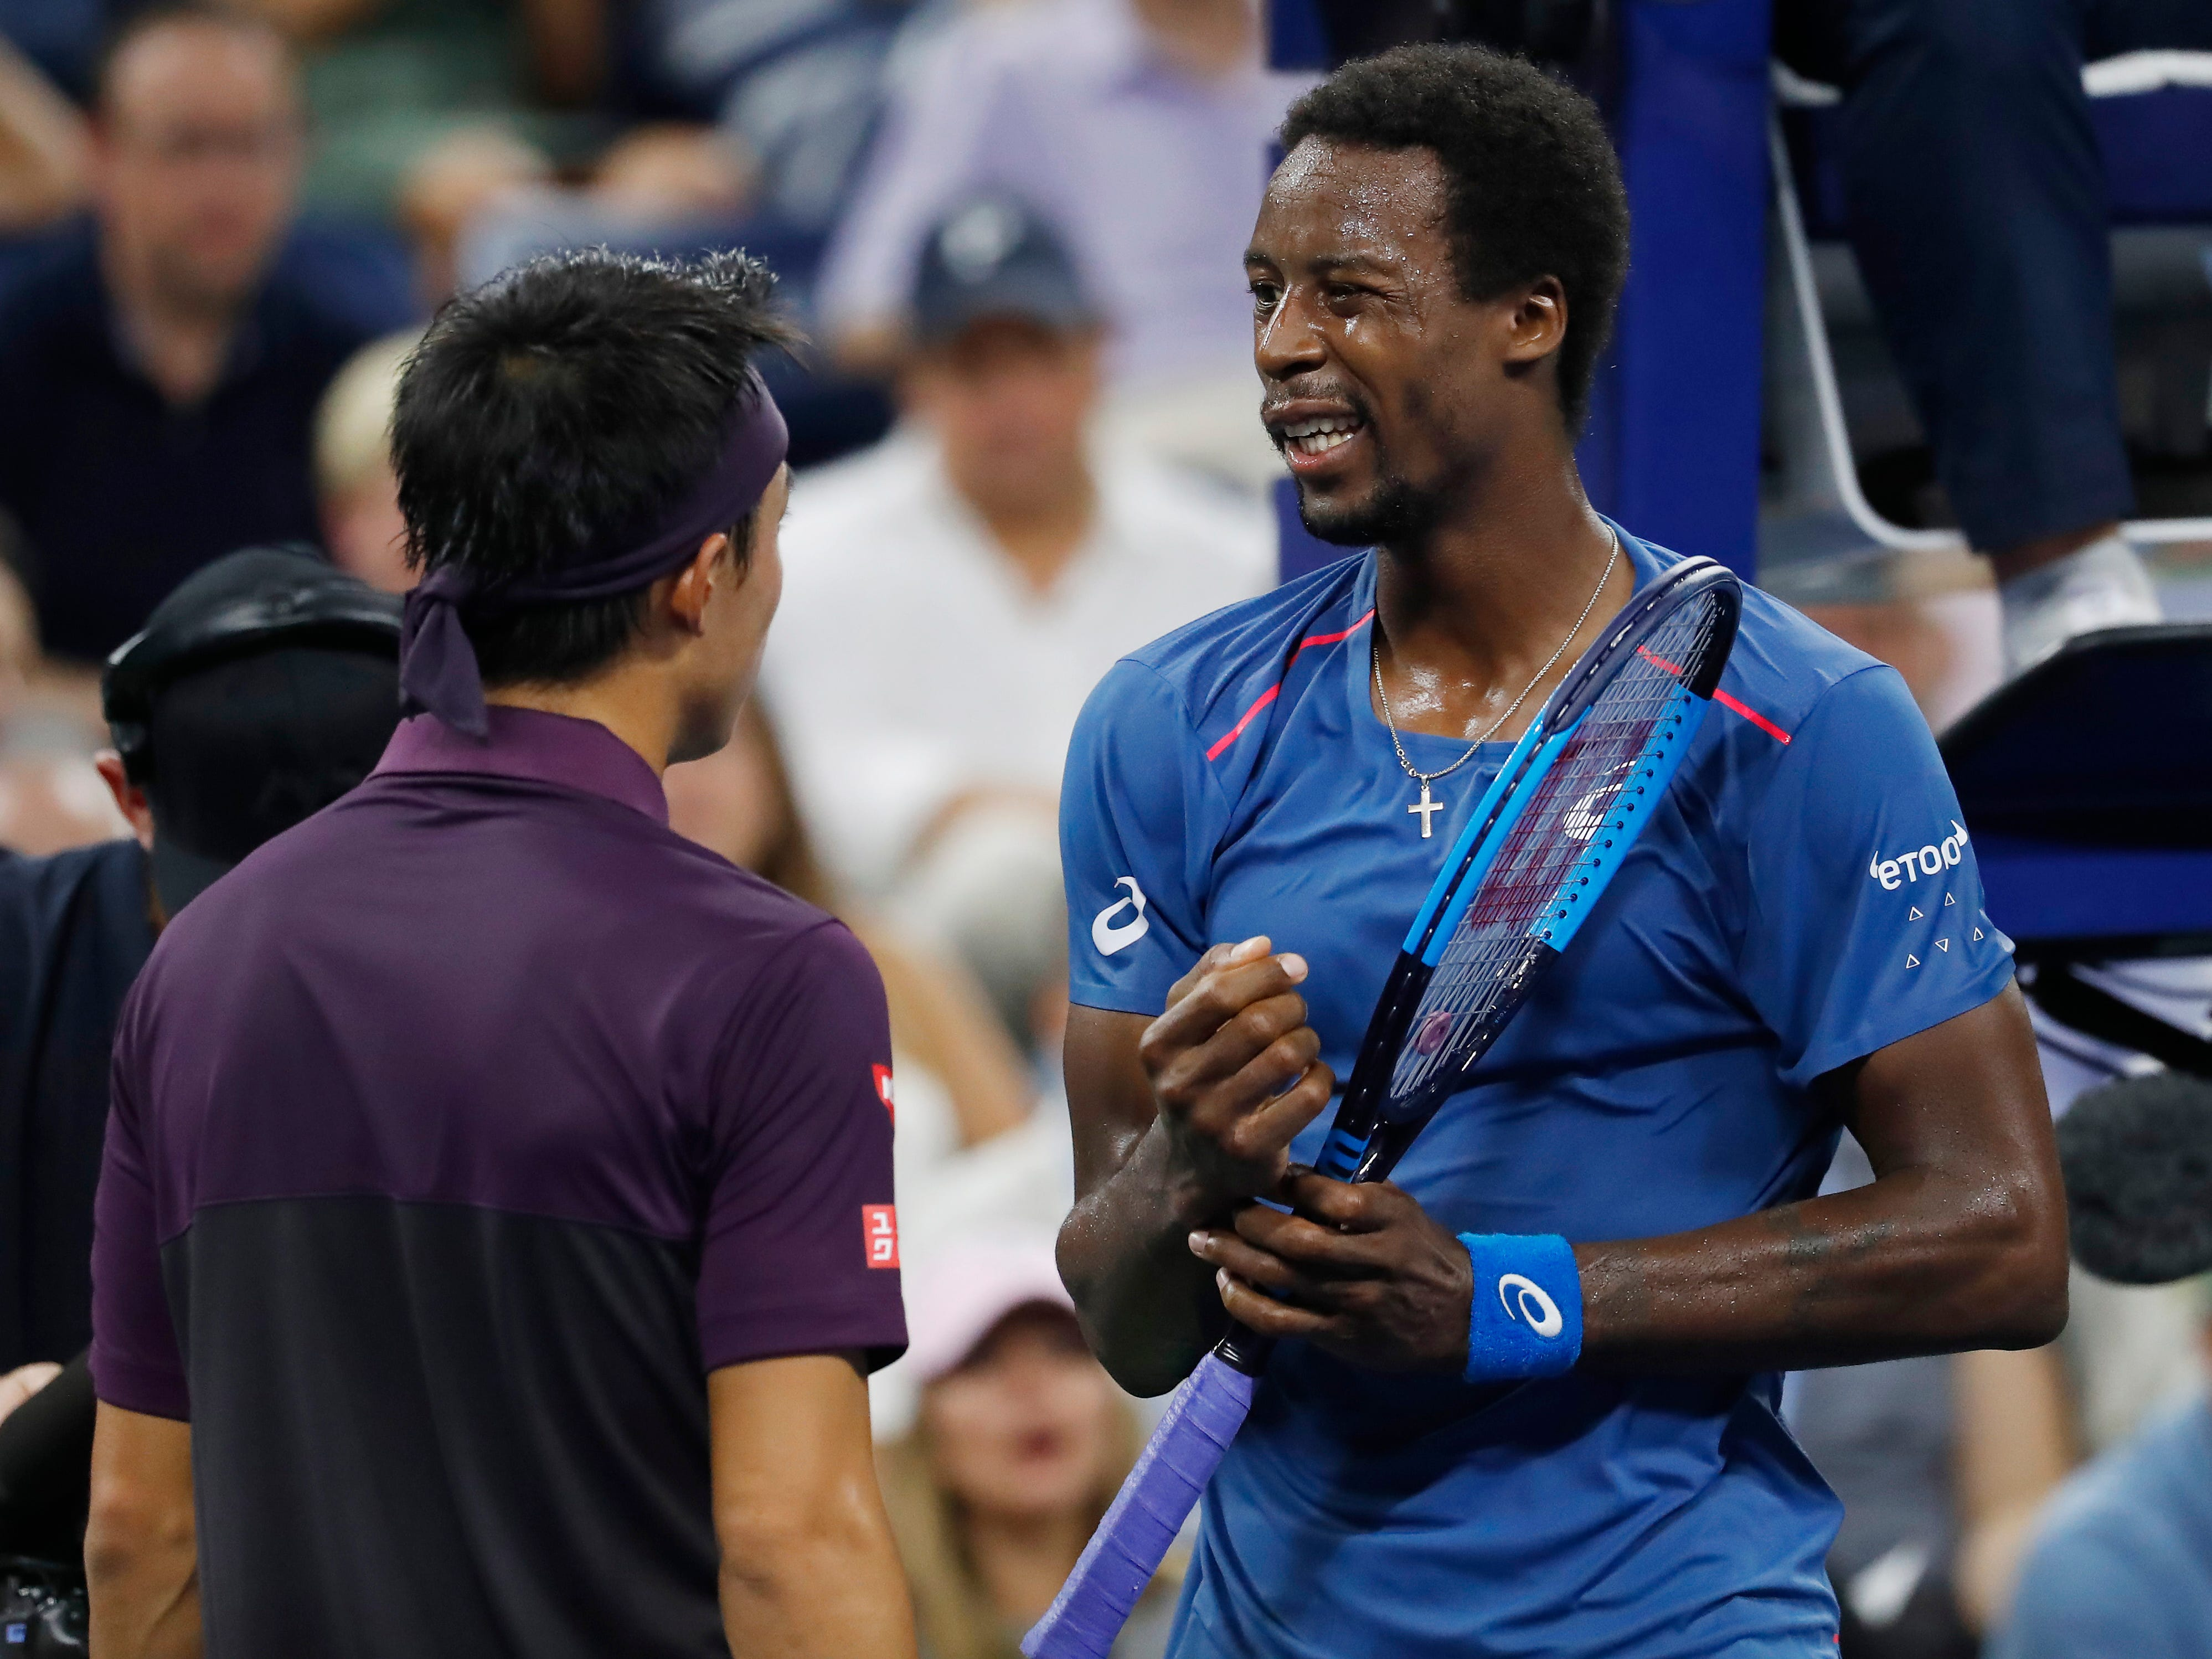 Gael Monfils (right) of France was foreced to retire against Kei Nishikori of Hapan because of a wrist injury.